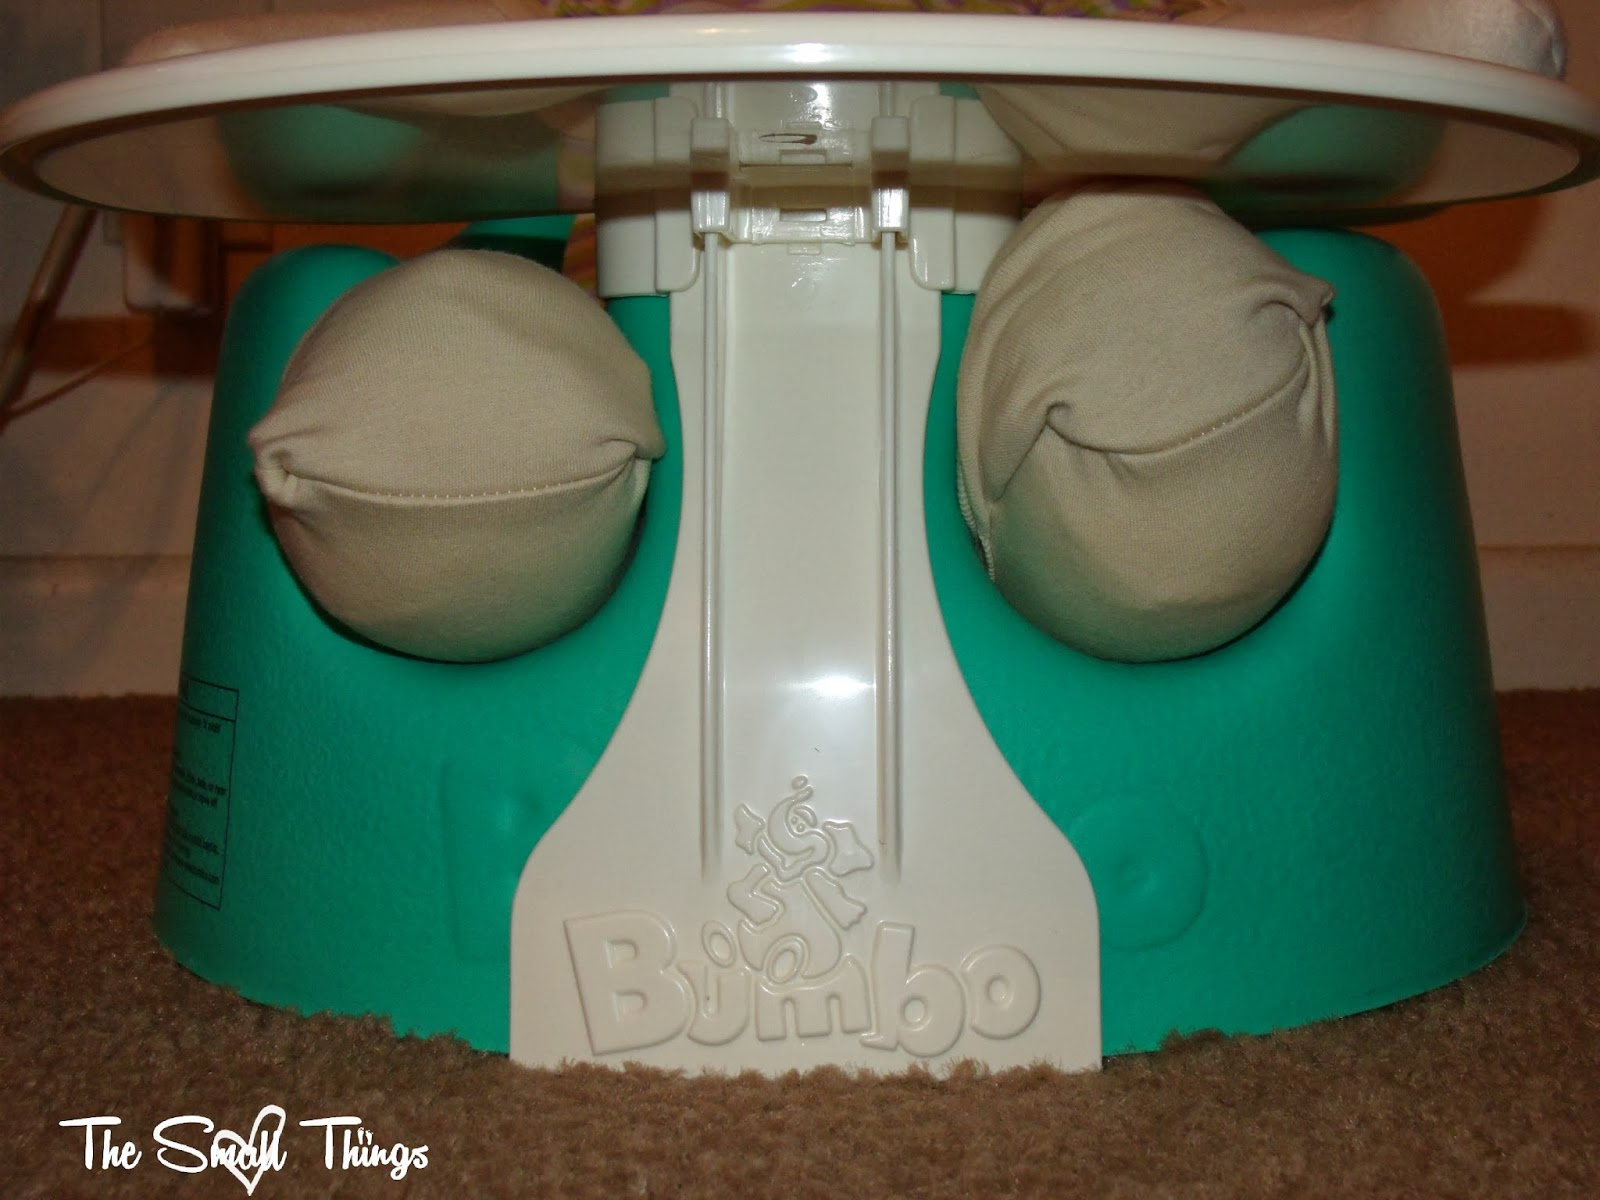 Bumbo Floor Seat And Play Tray Review Giveaway Giftguide